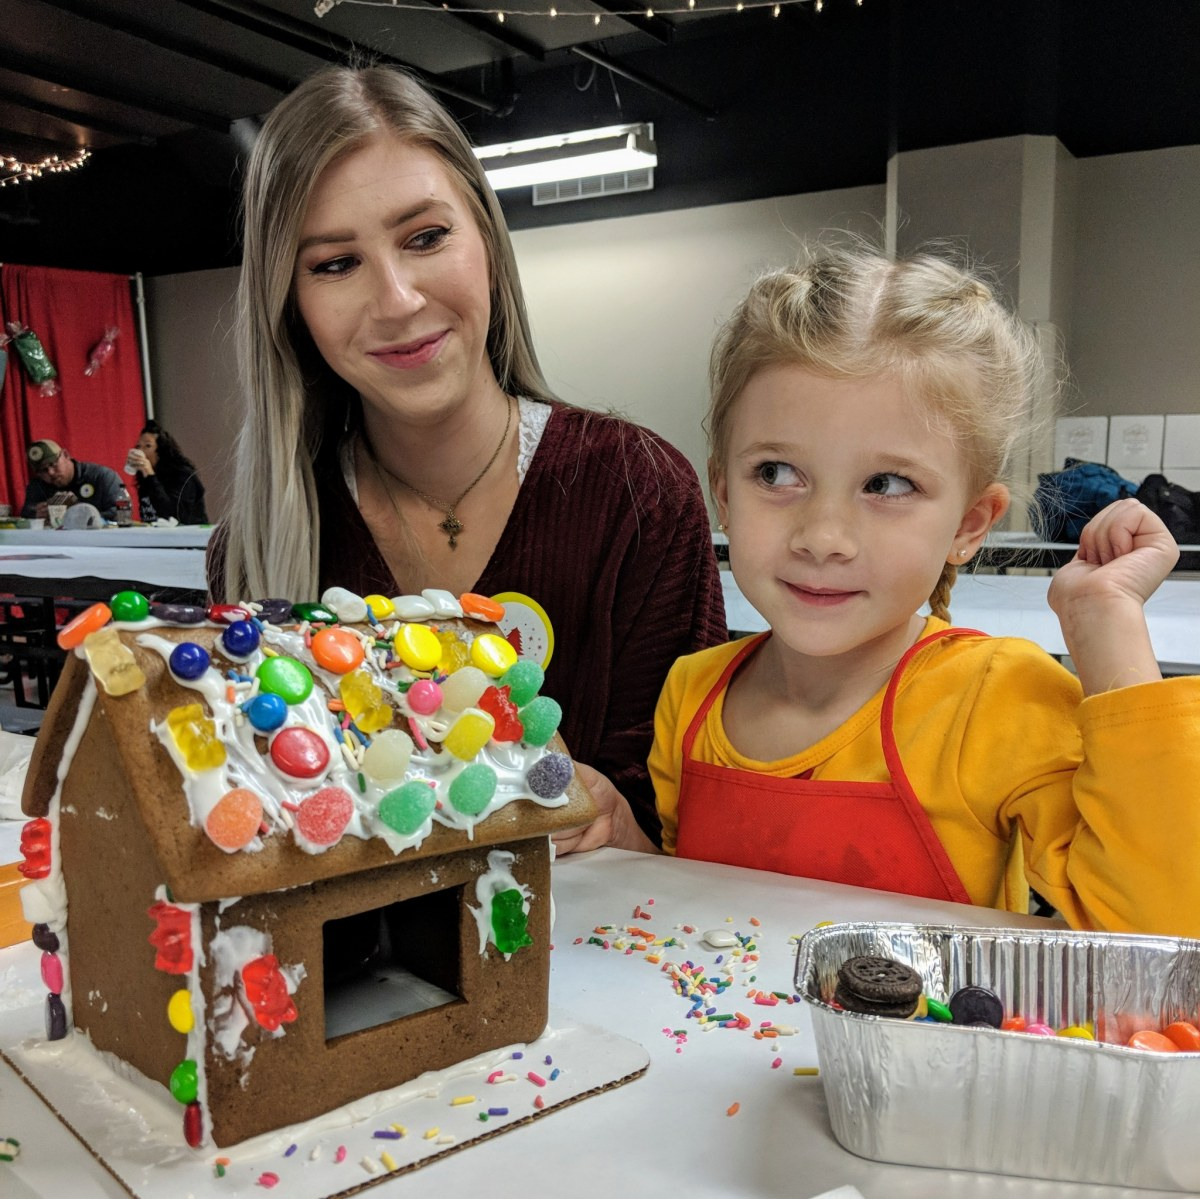 5 reasons to attend Santa's Gingerbread Workshop at McWane Science Center on December 15